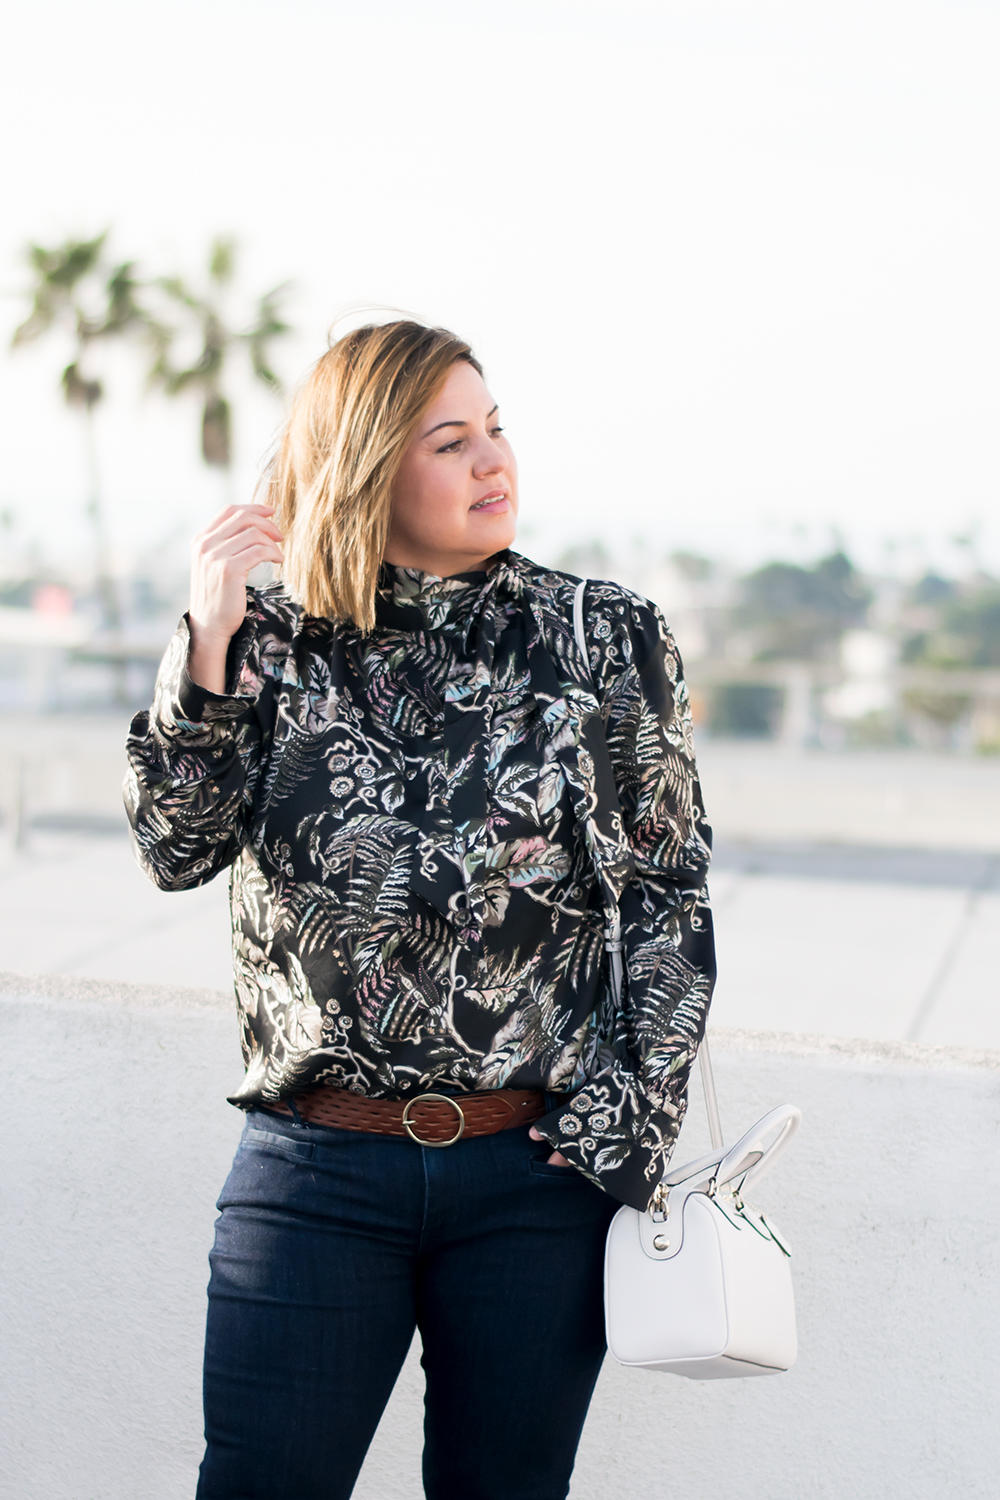 Closet Staples The Printed Blouse Wardrobe Basics Capsule Wardrobe Barefoot In LA Fashion Blog Stylist Best Outfits of 2018 0038